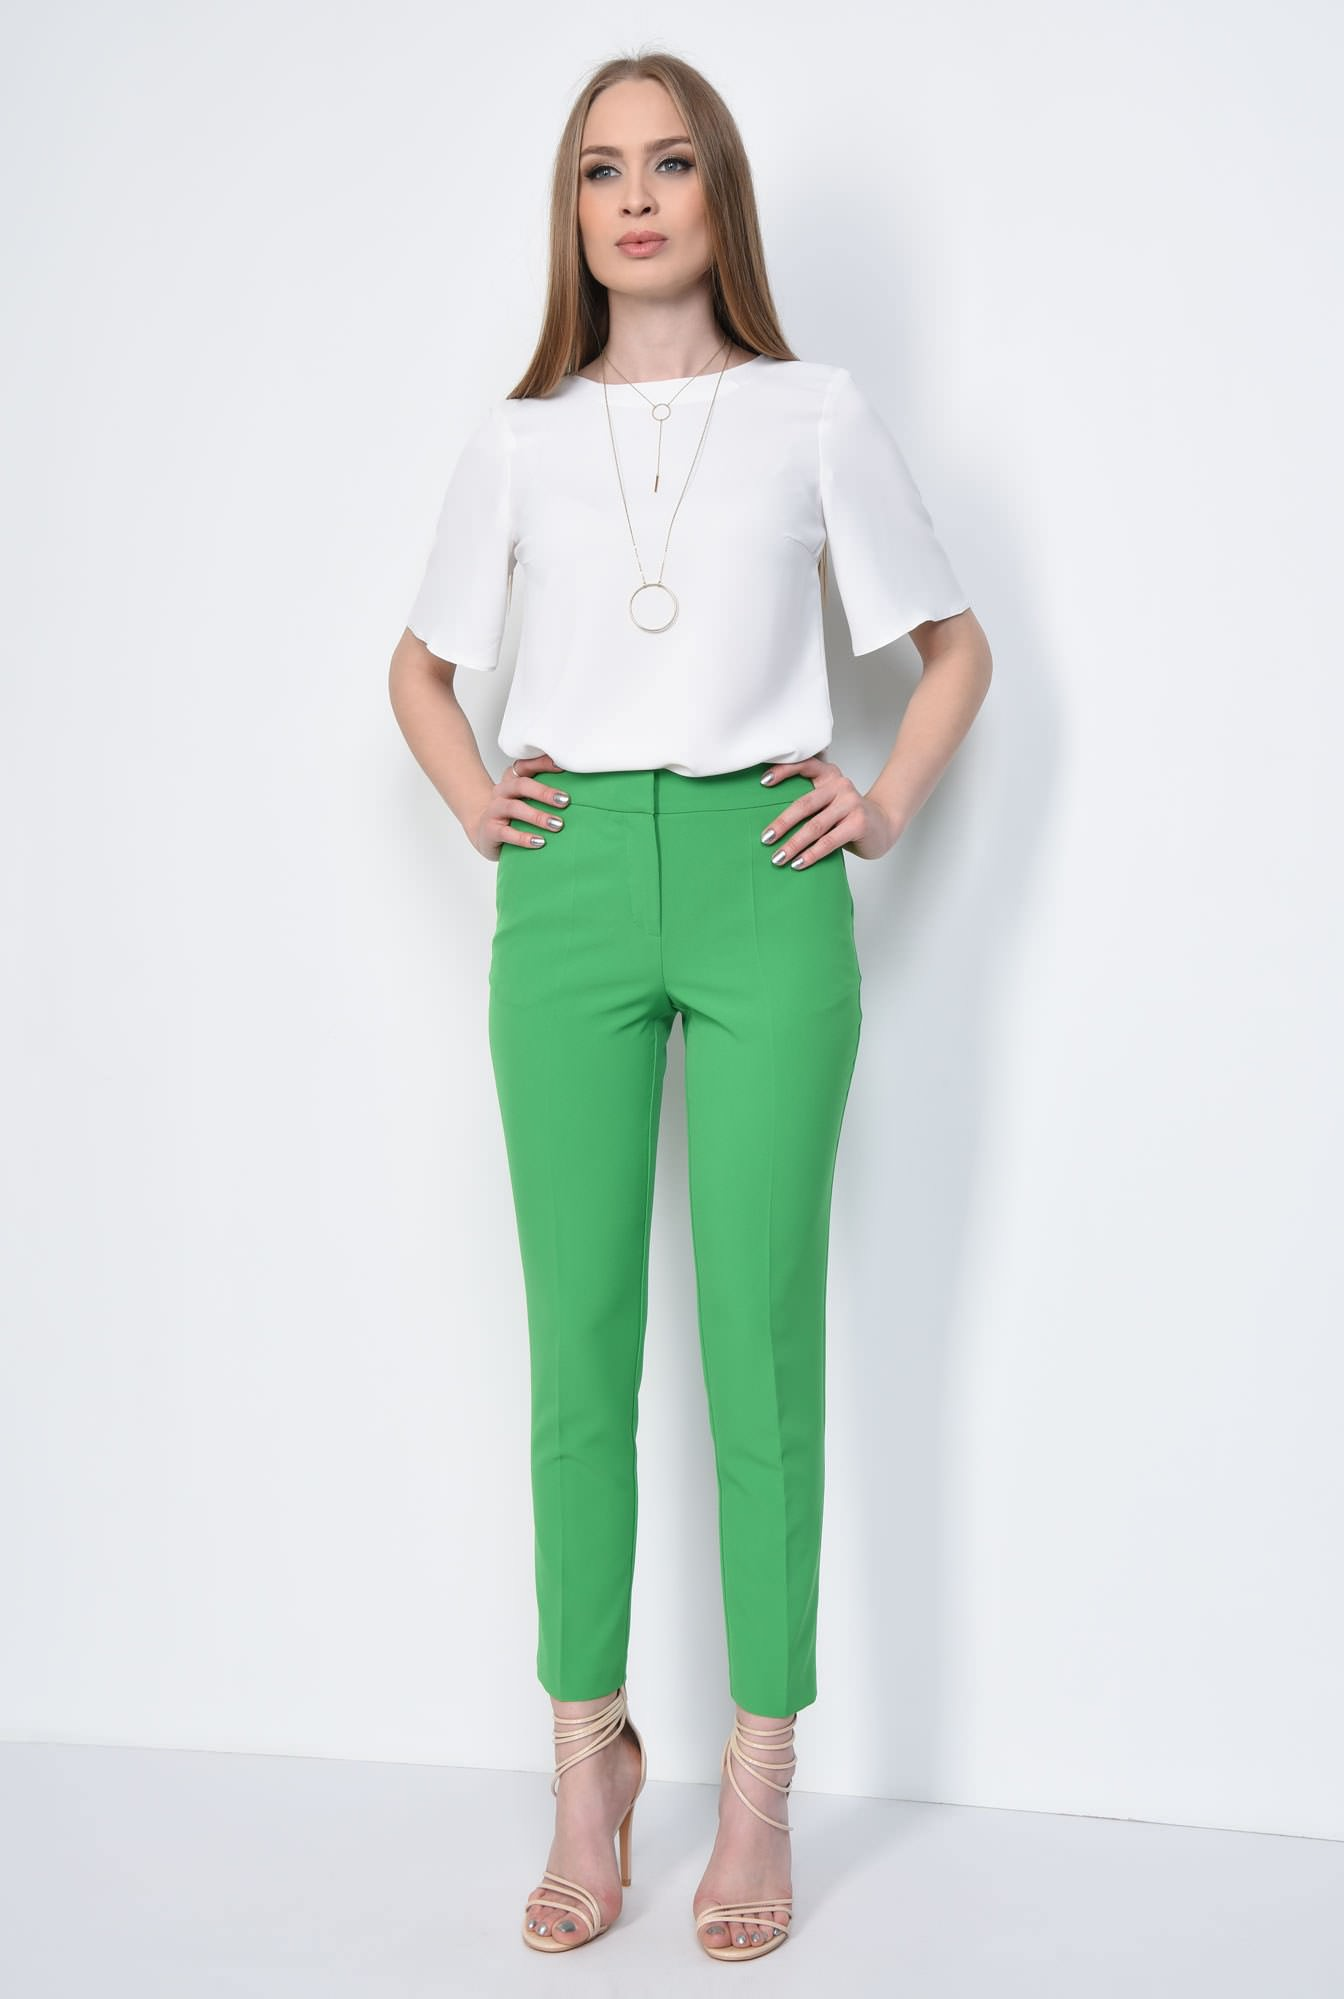 3 - PANTALON OFFICE CONIC PT 142-VERDE